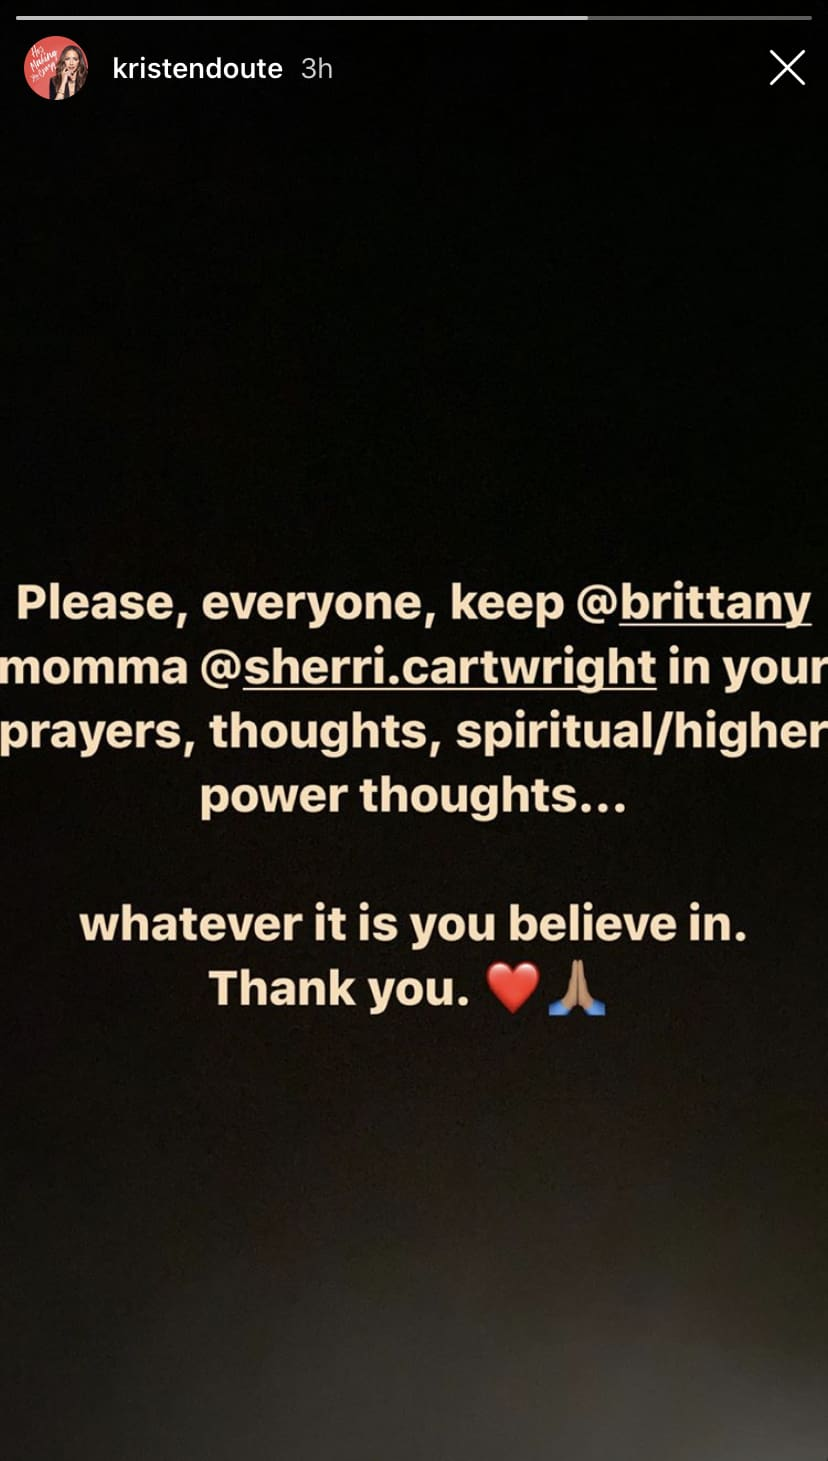 Vanderpump Rules Kristen Doute Requests Prayers for Brittany Cartwright's Mom on Instagram